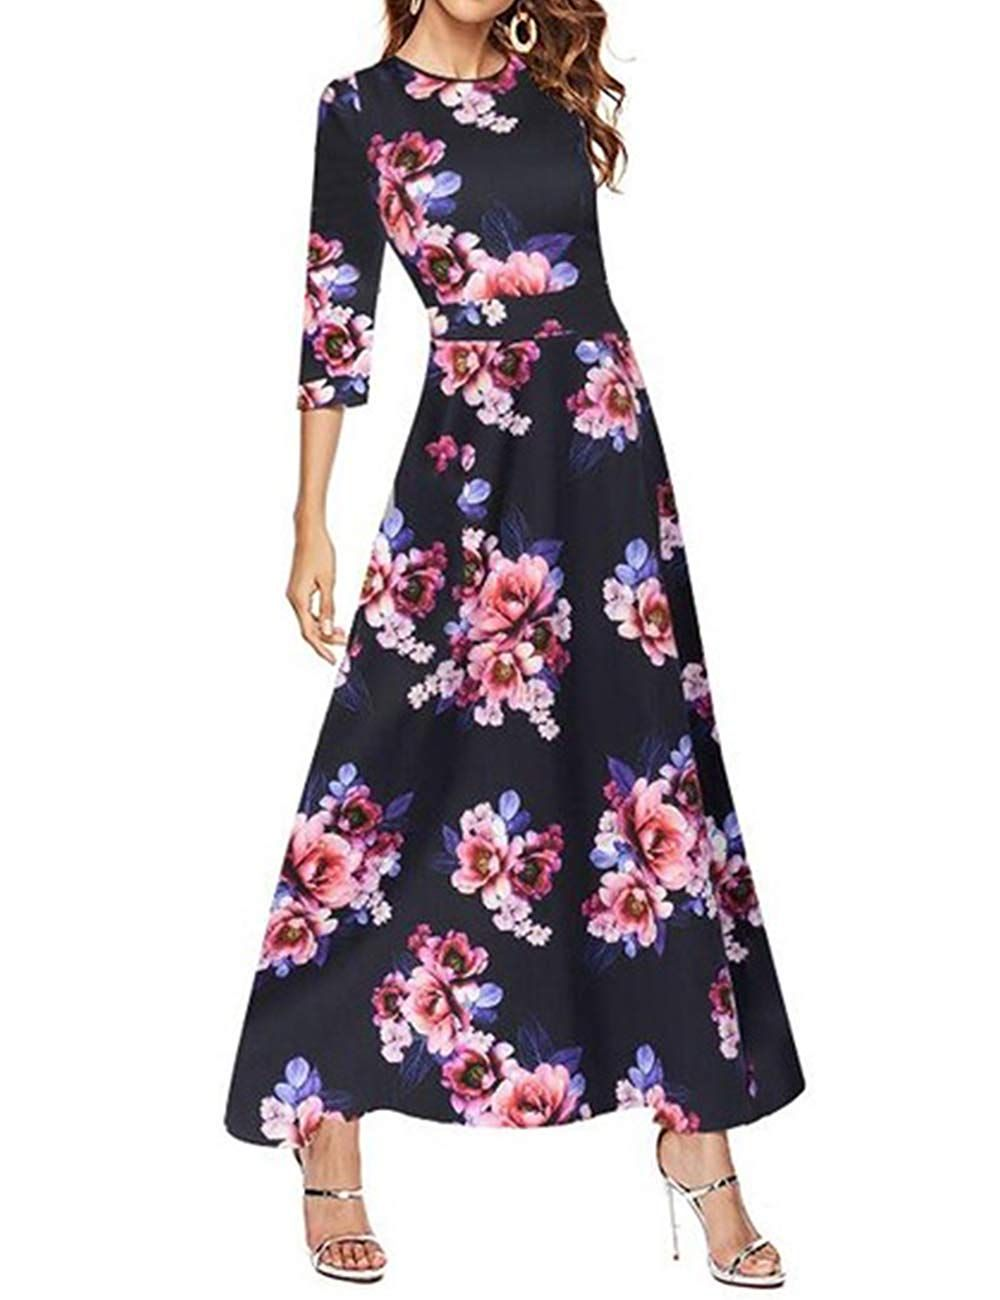 Simple Flavor Women S 3 4 Sleeve Vintage Floral Print Maxi Dress At Amazon Women S Clothing Store Floral Print Maxi Dress Maxi Dress Dresses [ 1300 x 1000 Pixel ]